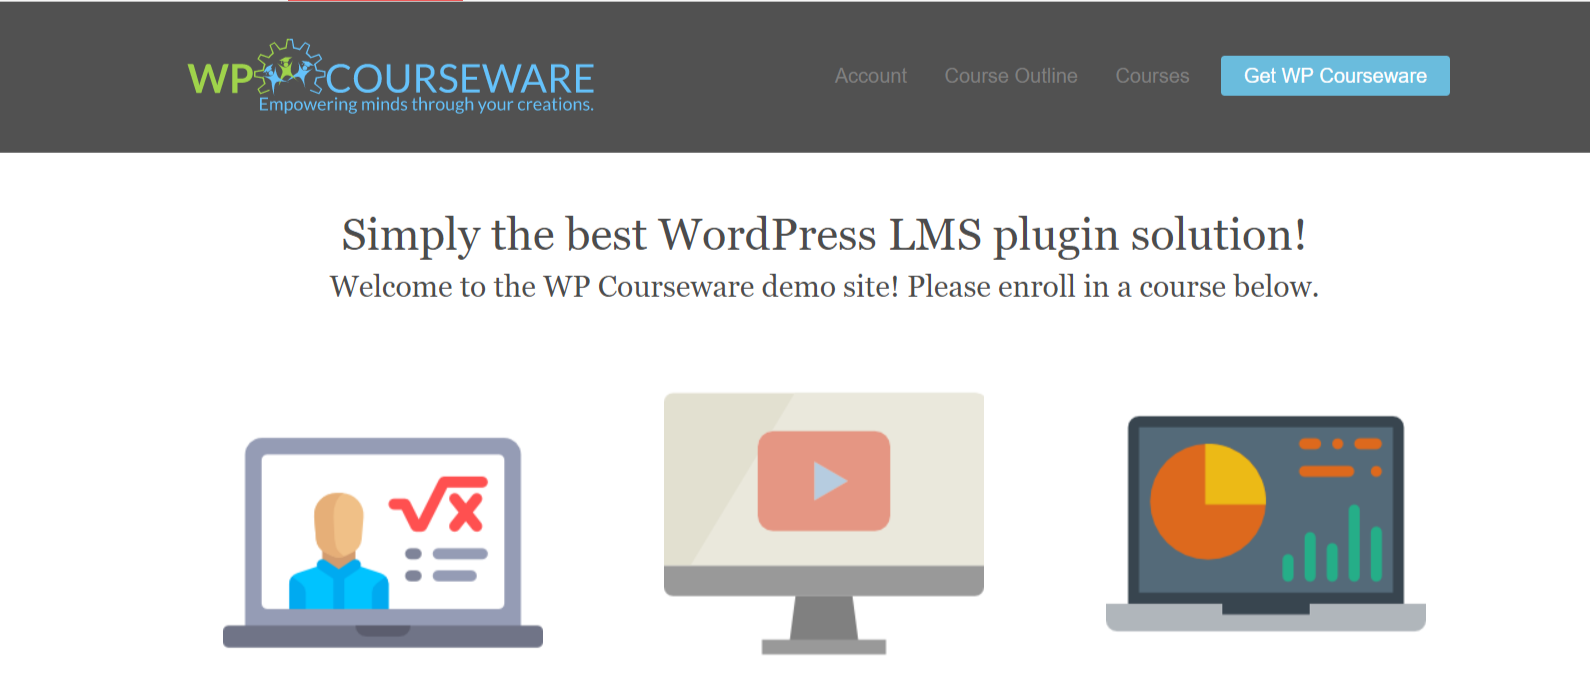 WP Courseware Demo – Build An Course Using WordPress